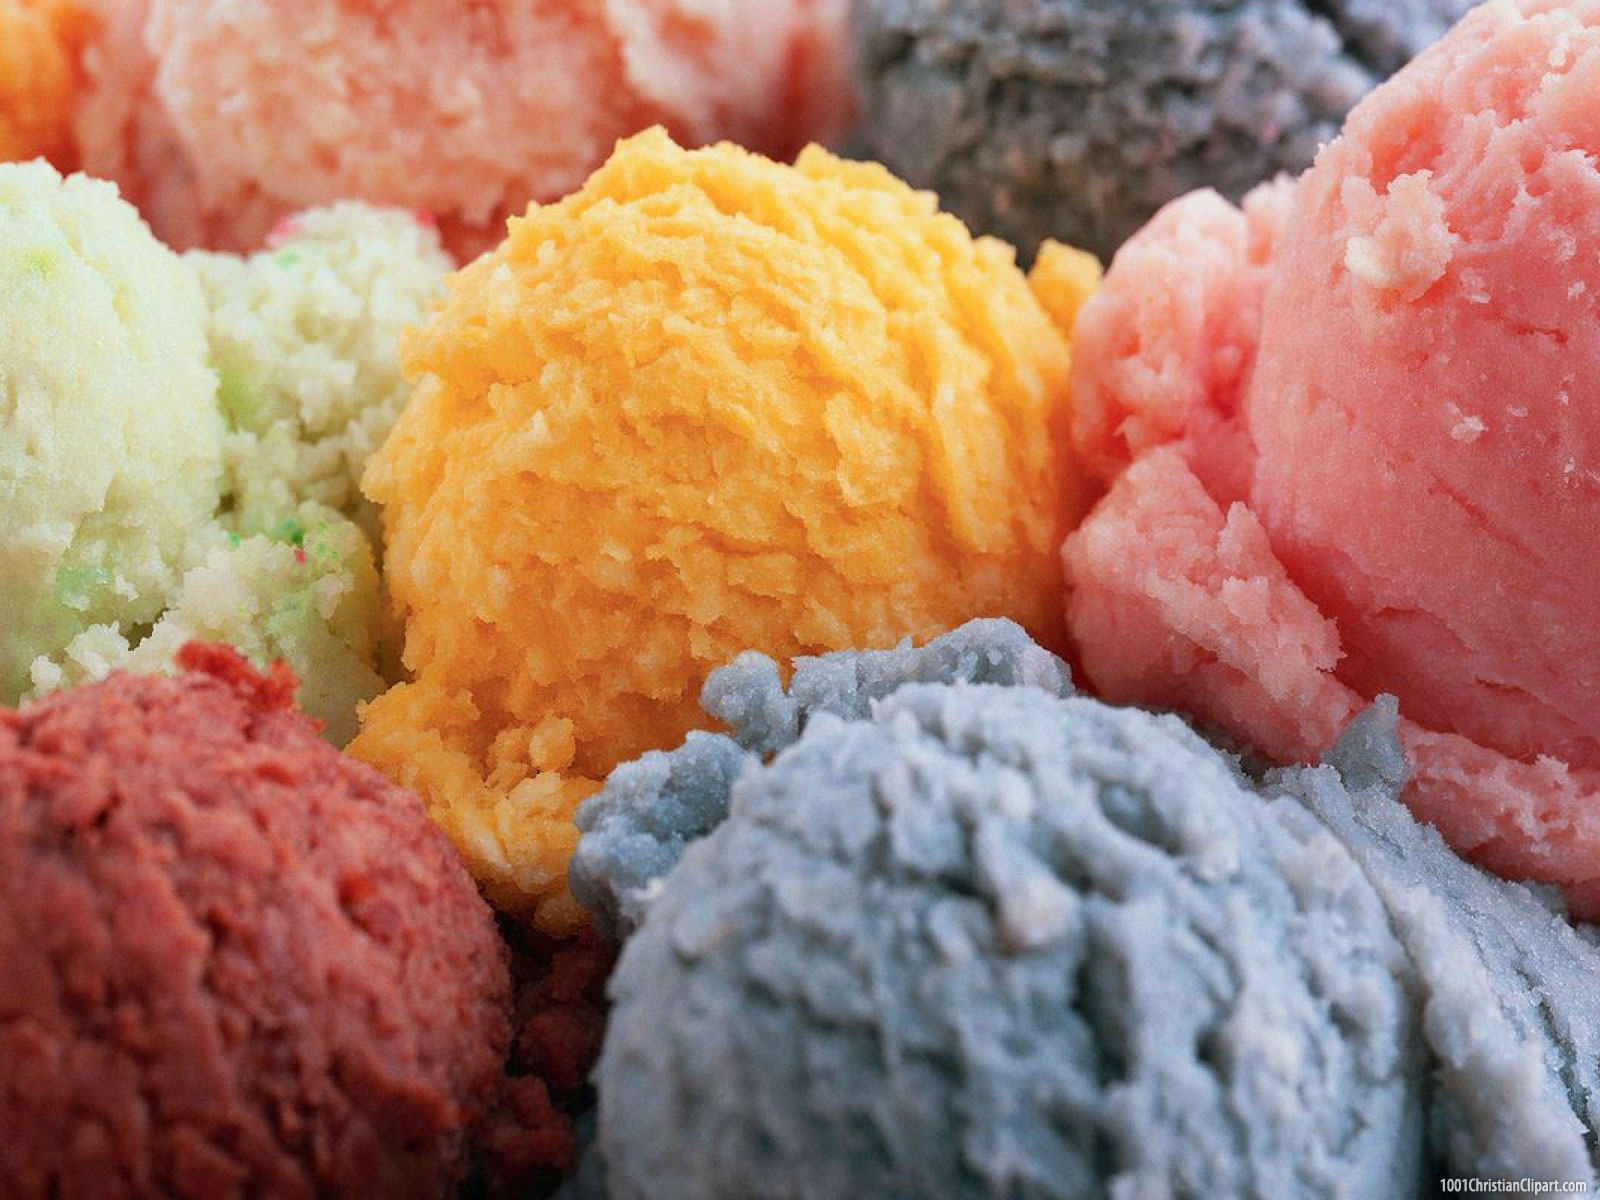 Colorful Ice Cream Presentation Background